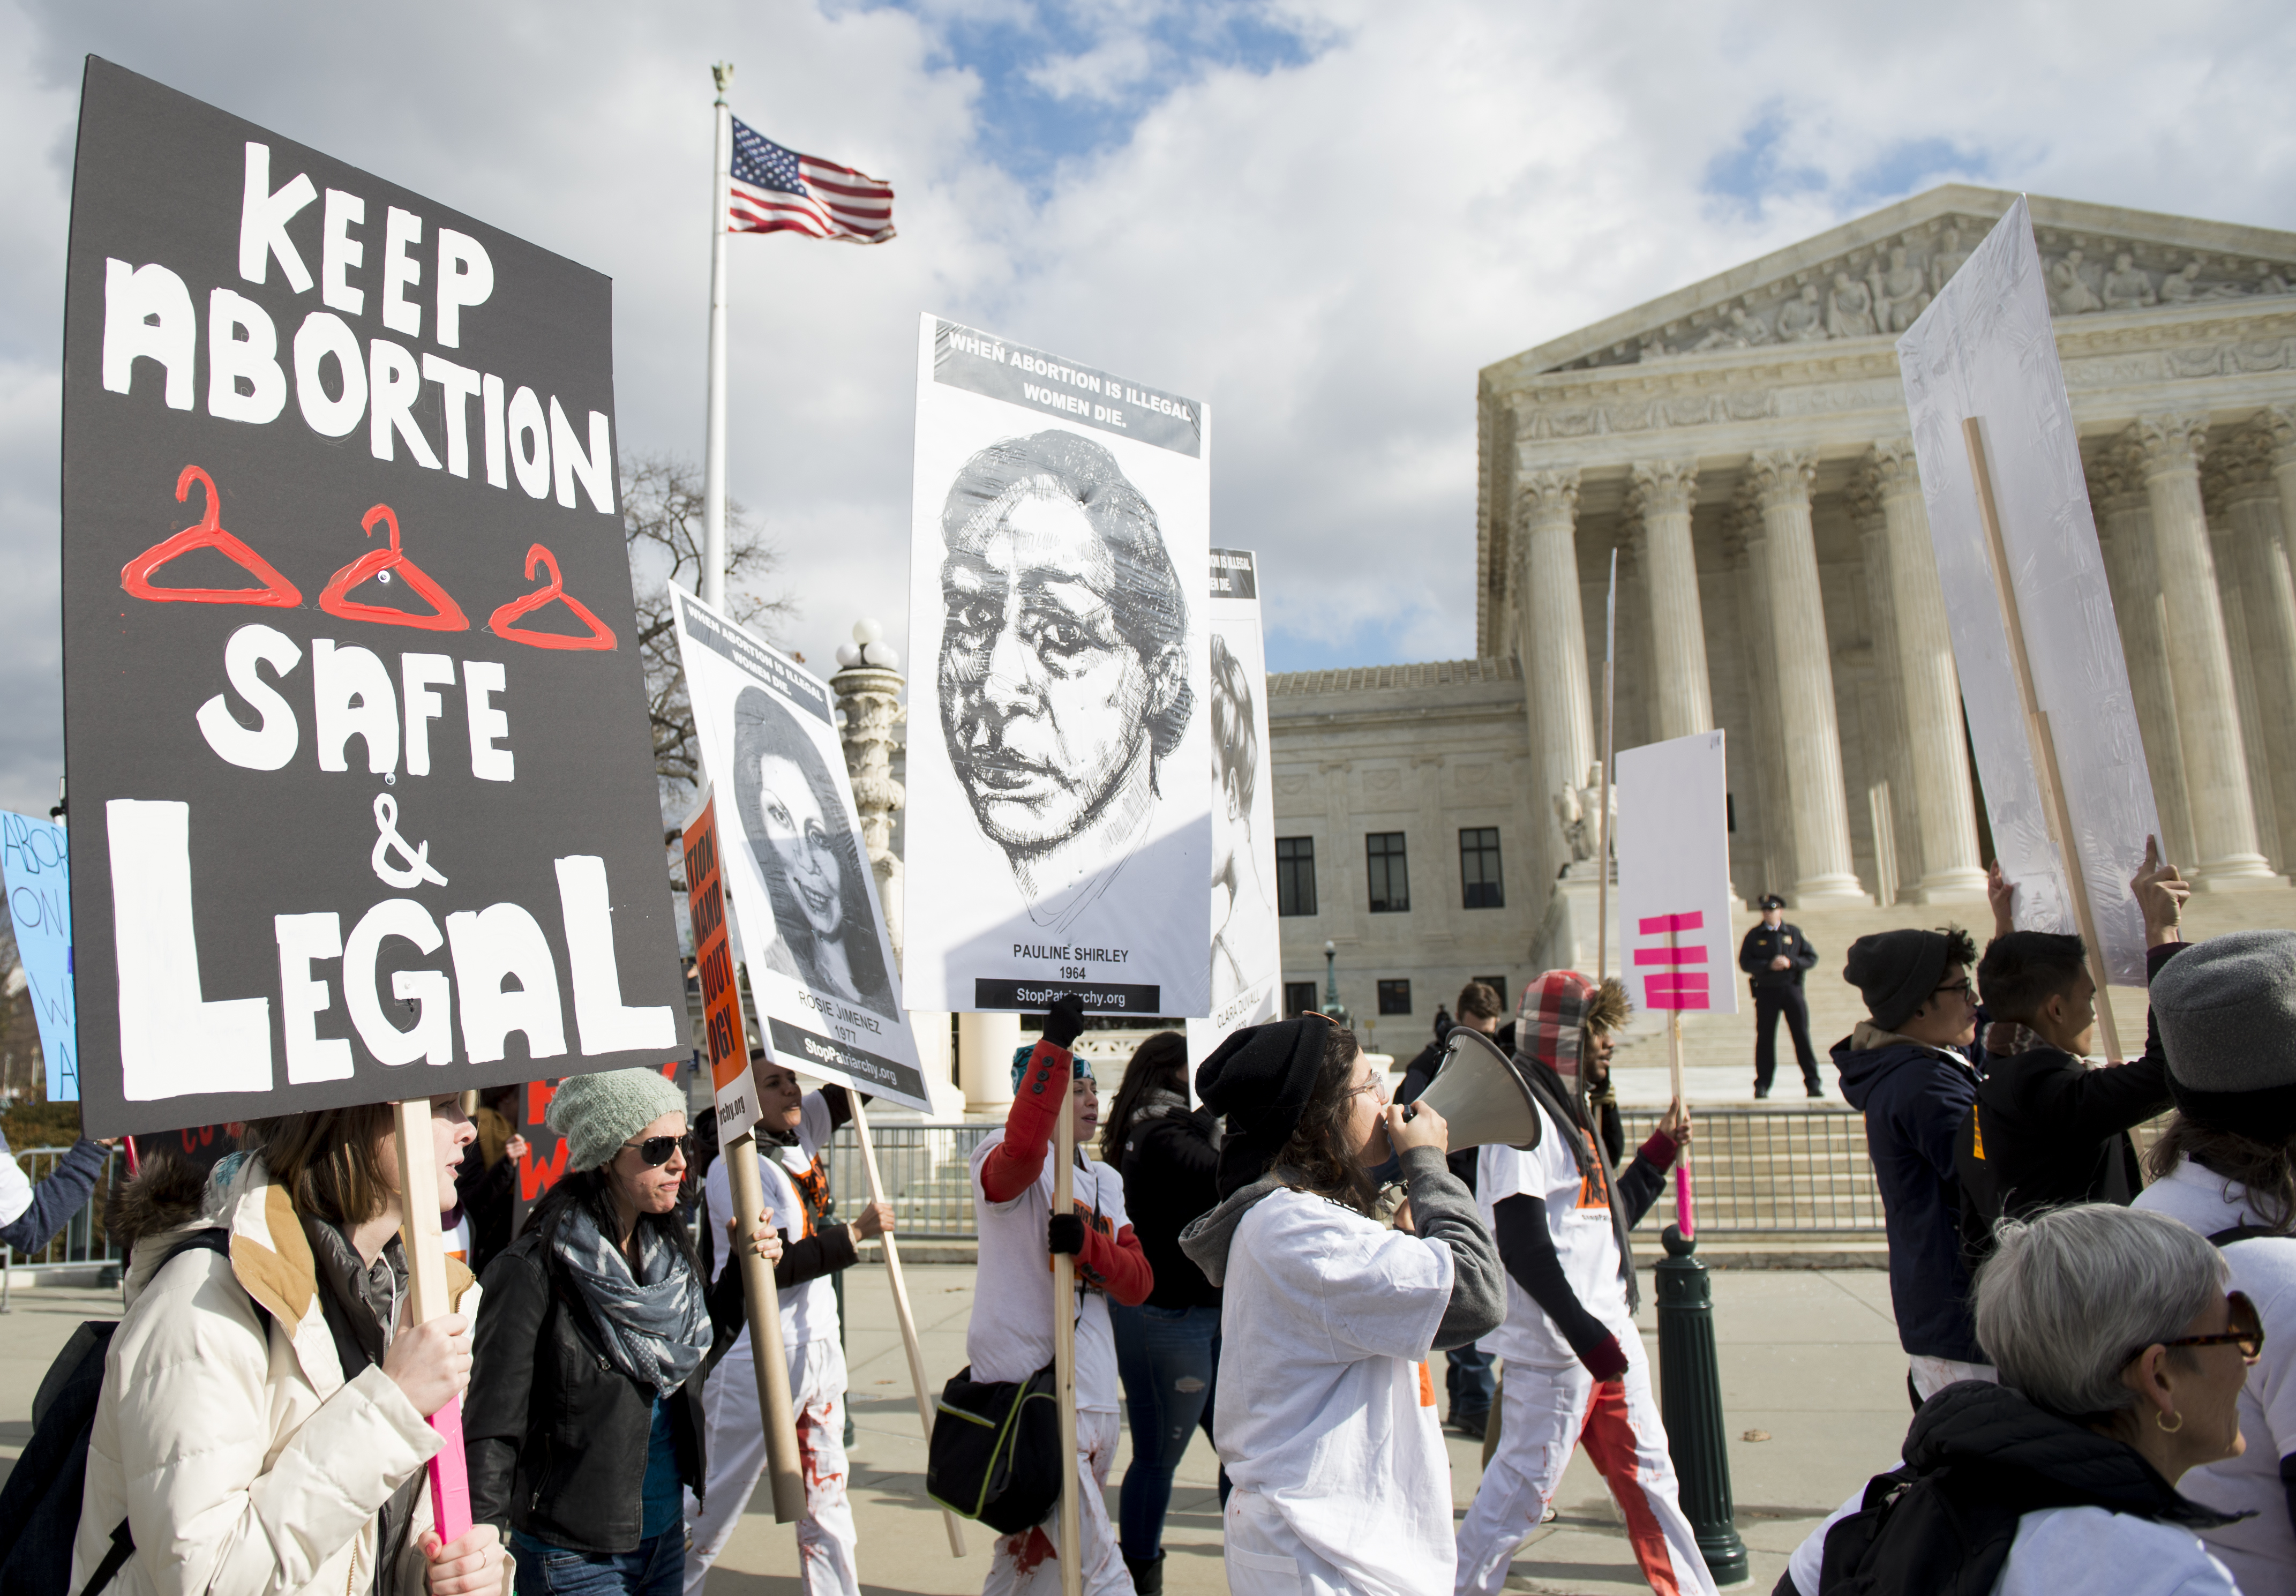 Pro-choice protesters chant in front of the Supreme Court on Thursday, Jan. 22, 2015, the anniversary of the Roe v Wade abortion decision. (Bill Clark--CQ Roll Call)